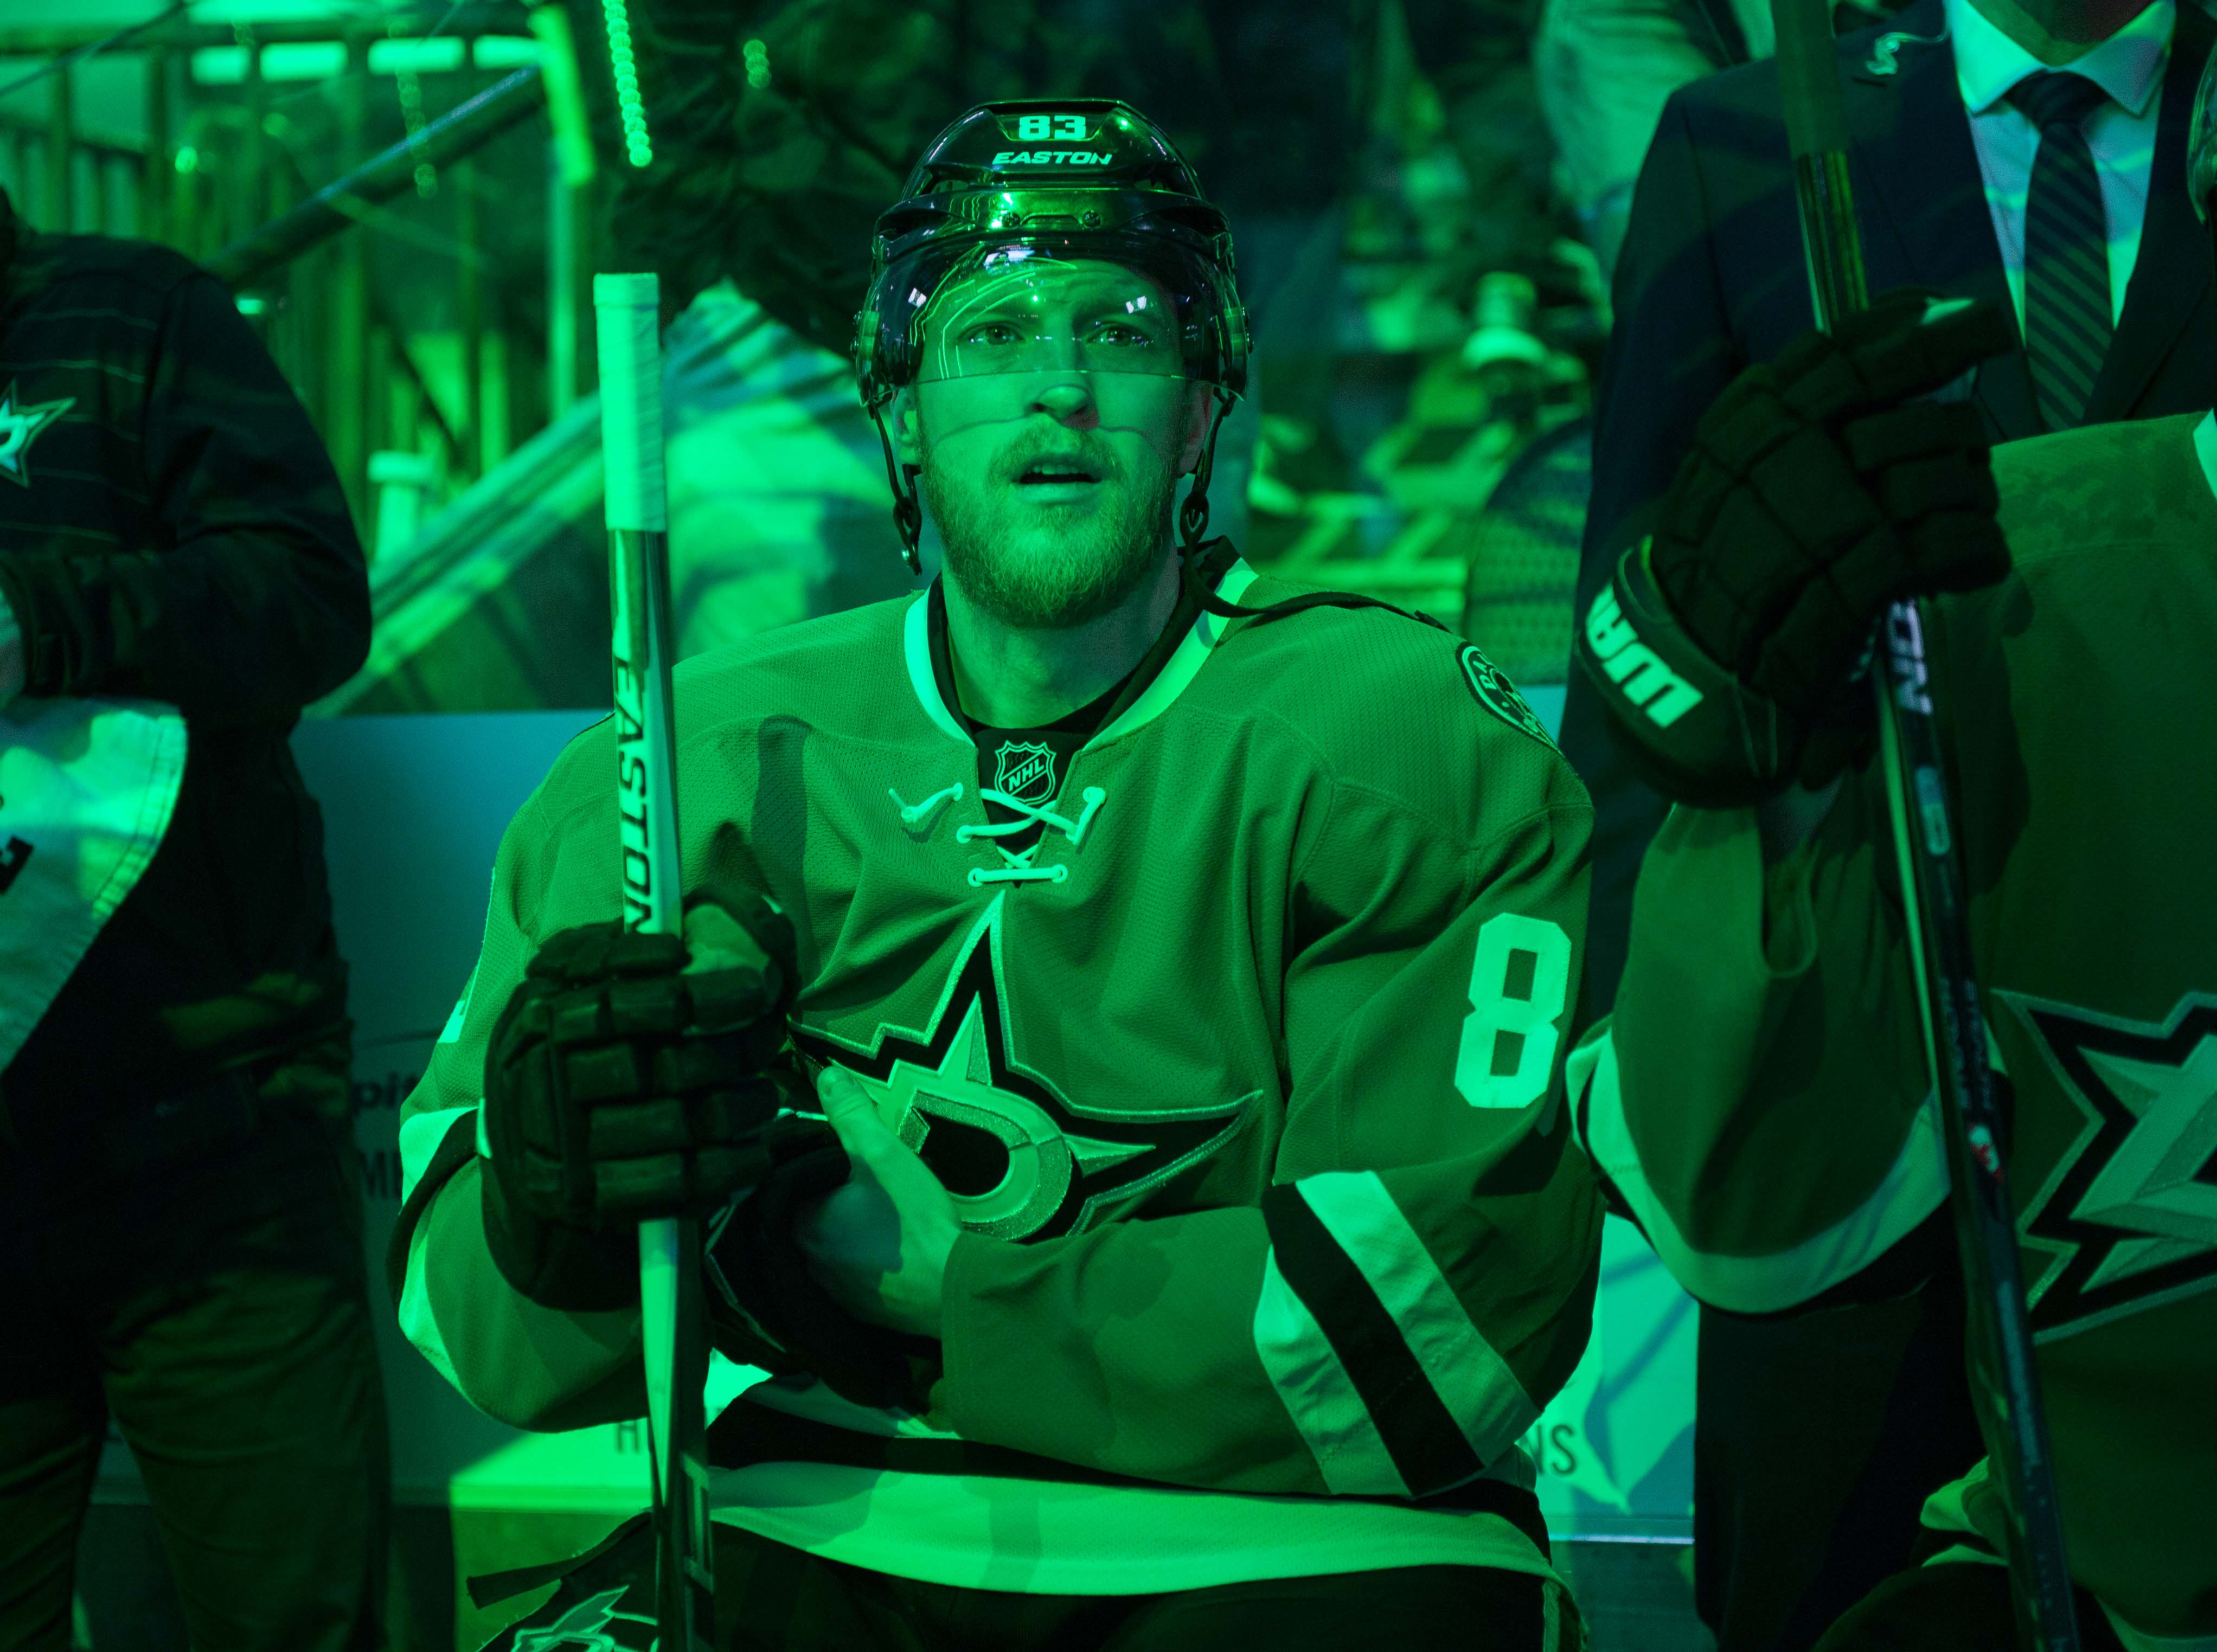 9296675-nhl-stanley-cup-playoffs-st.-louis-blues-at-dallas-stars